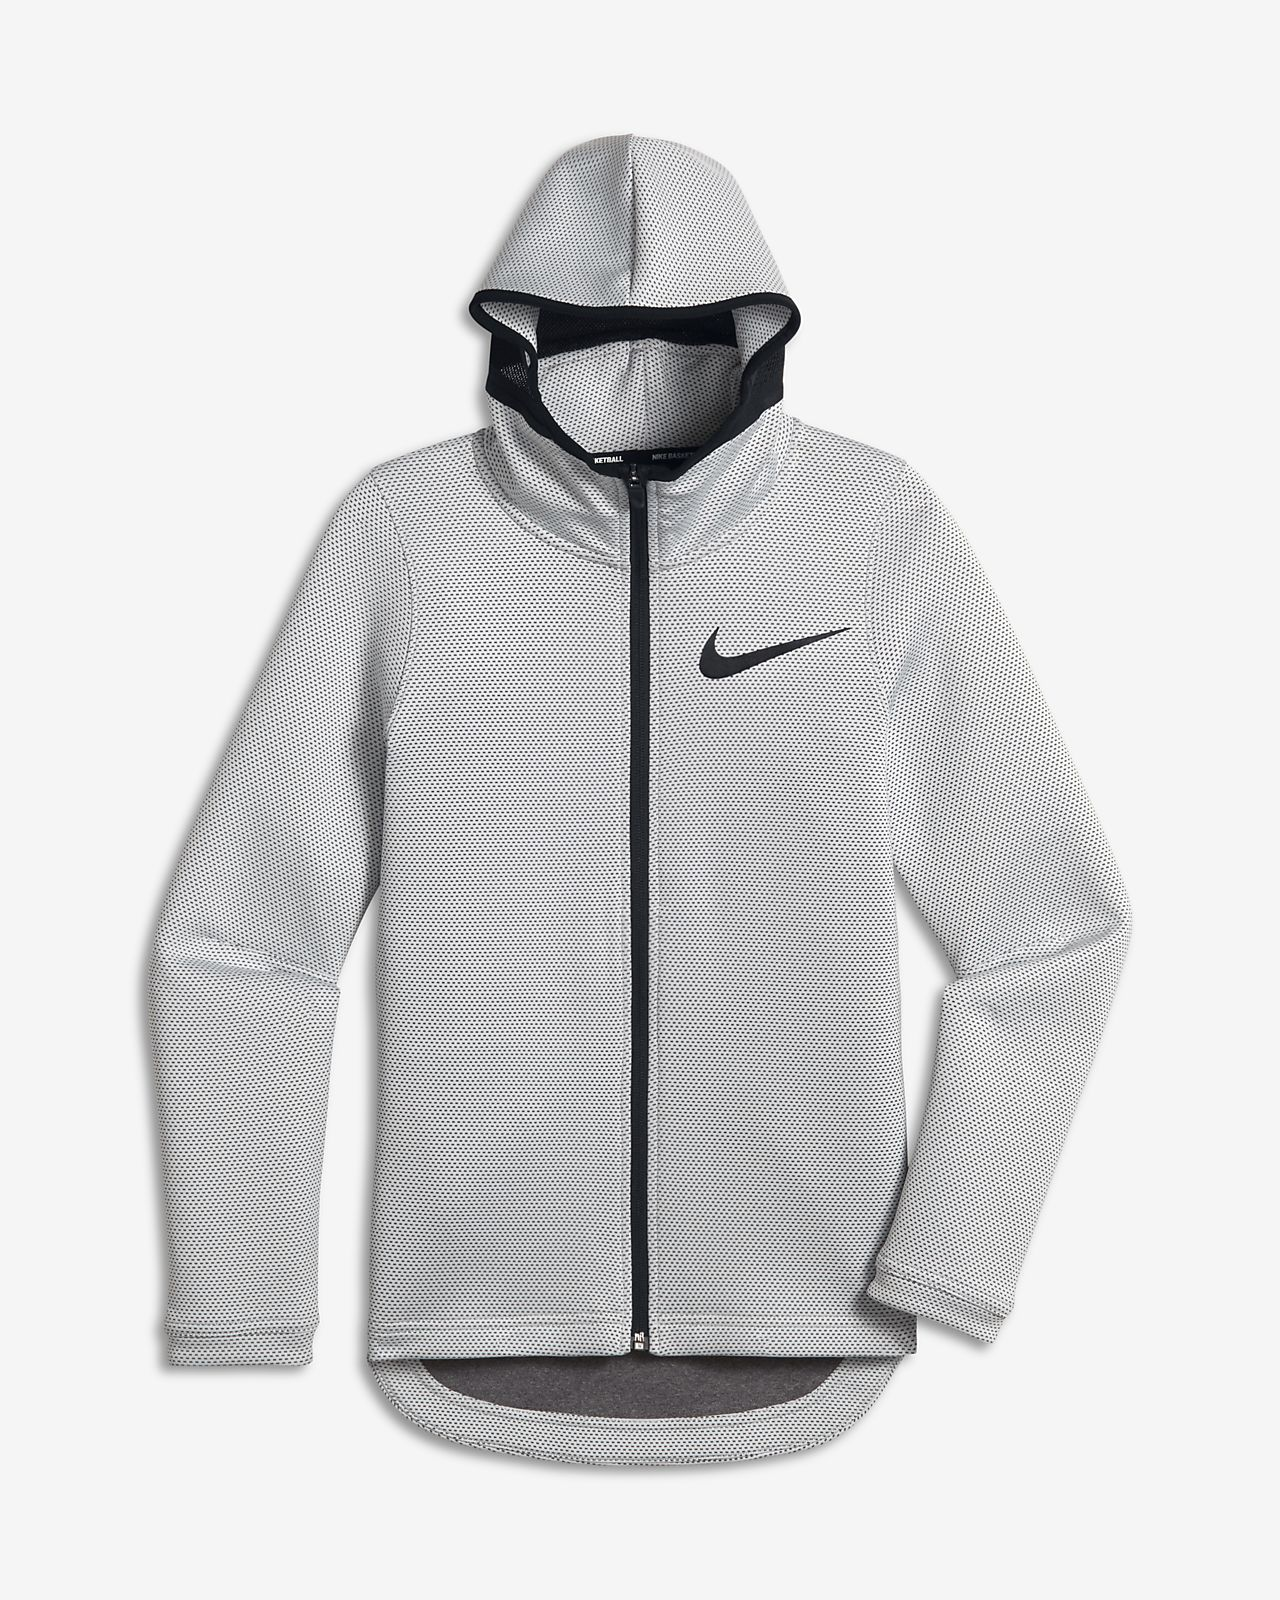 23f039d73cce Buy nike jacket kids silver   Up to 72% Discounts